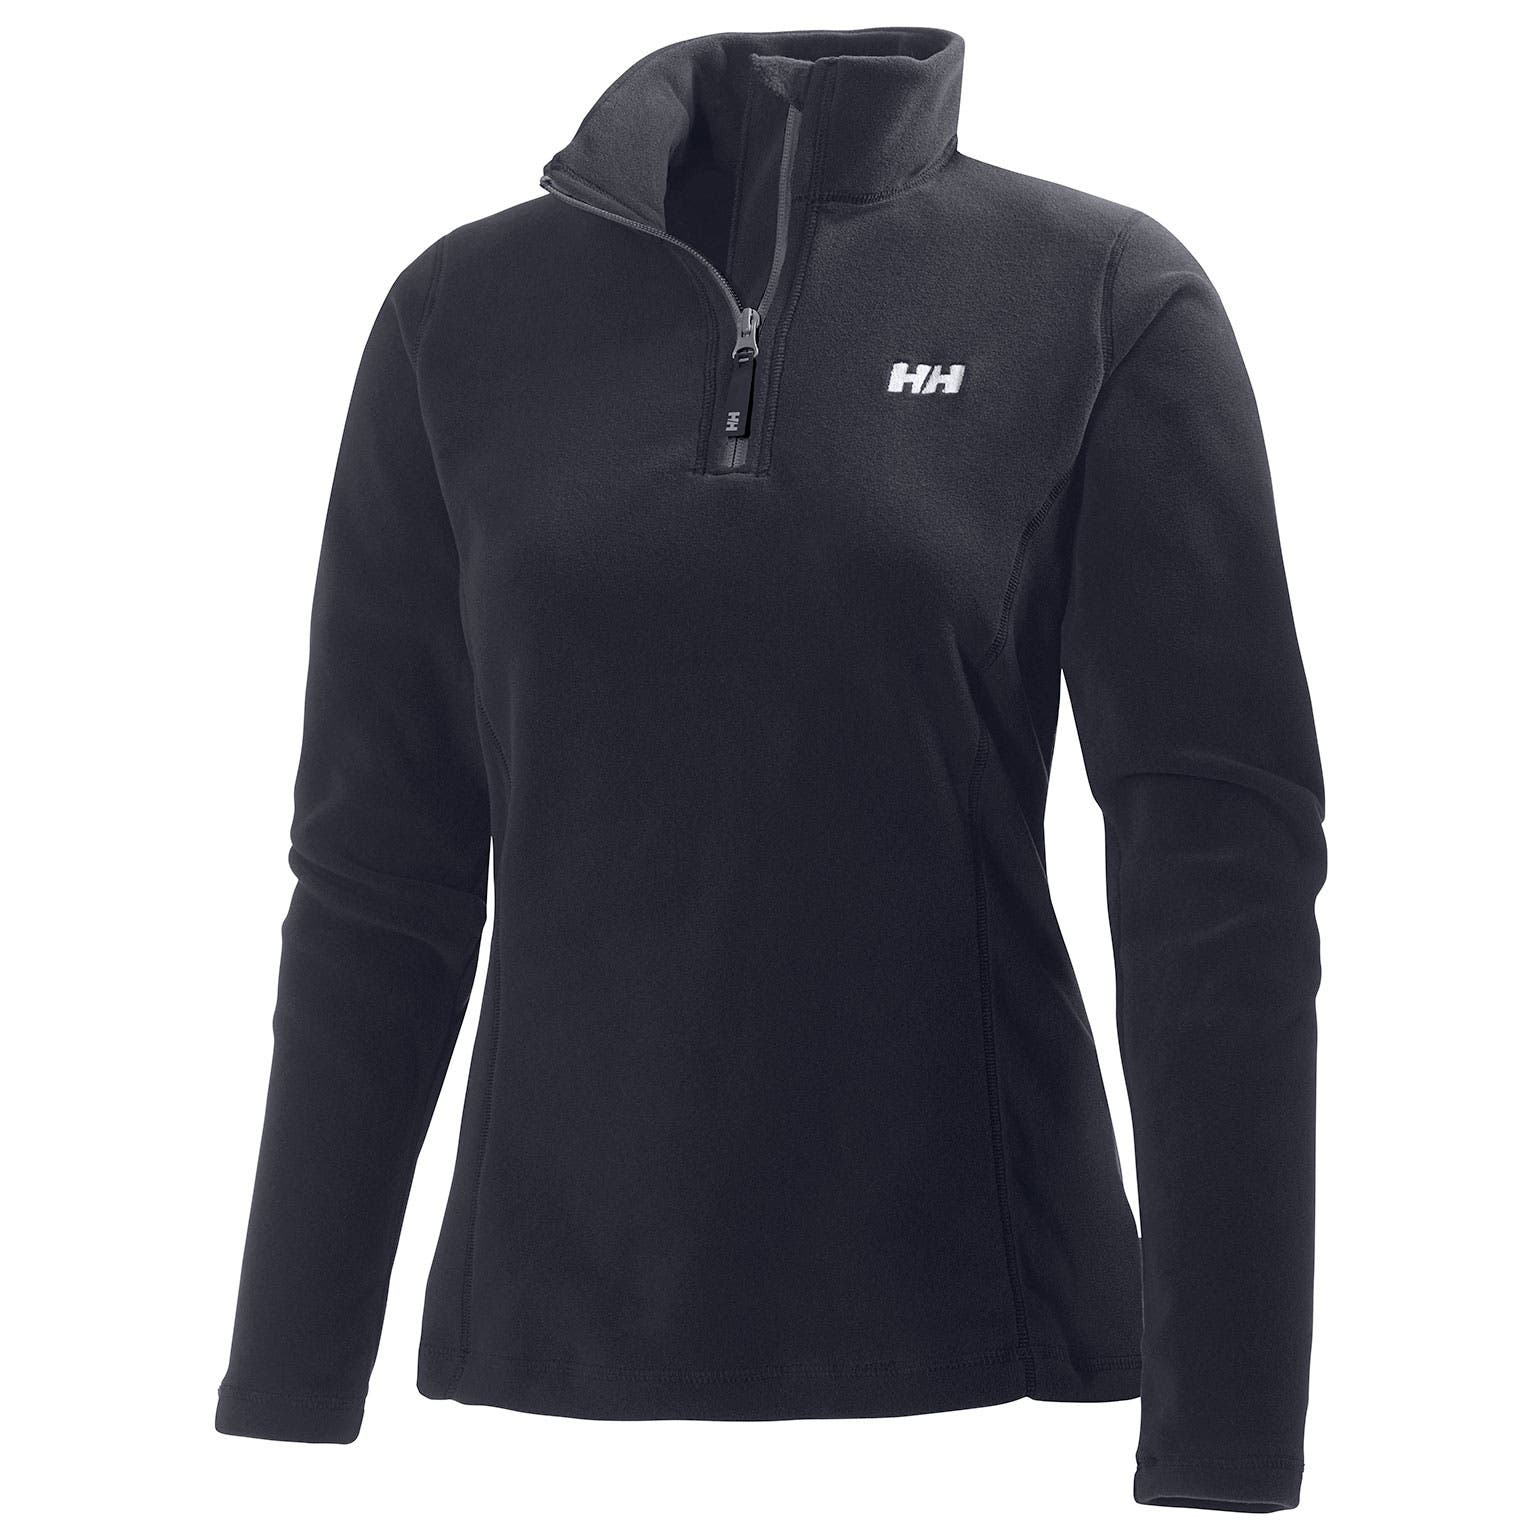 цены на Толстовка Helly Hansen W Daybreaker 1/2 Zip Fleece  в интернет-магазинах